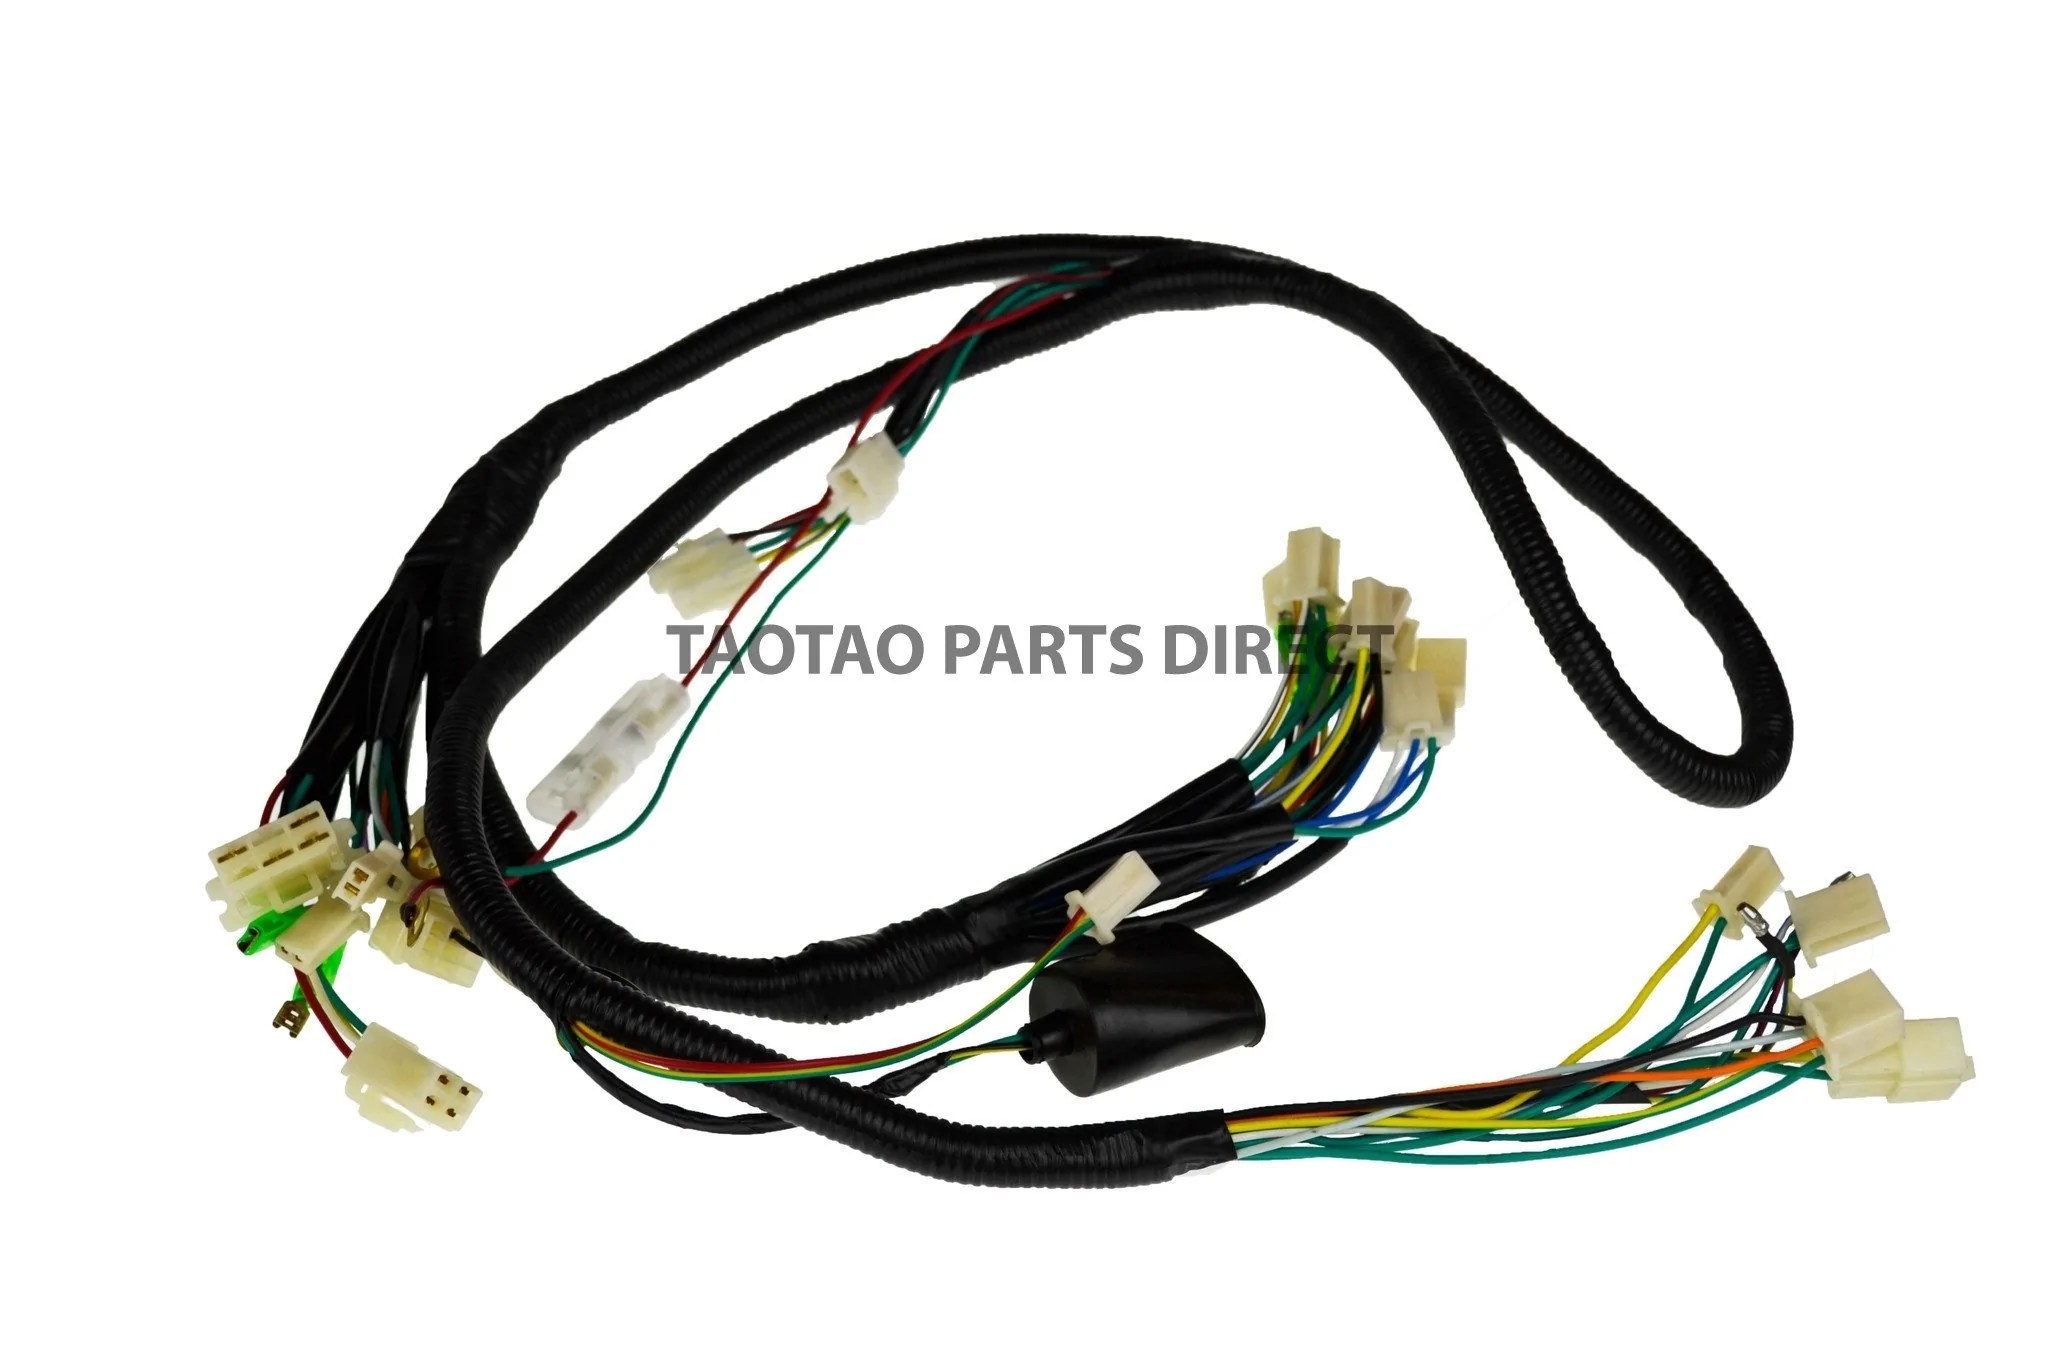 hight resolution of other models atm50a1 wire harness 18